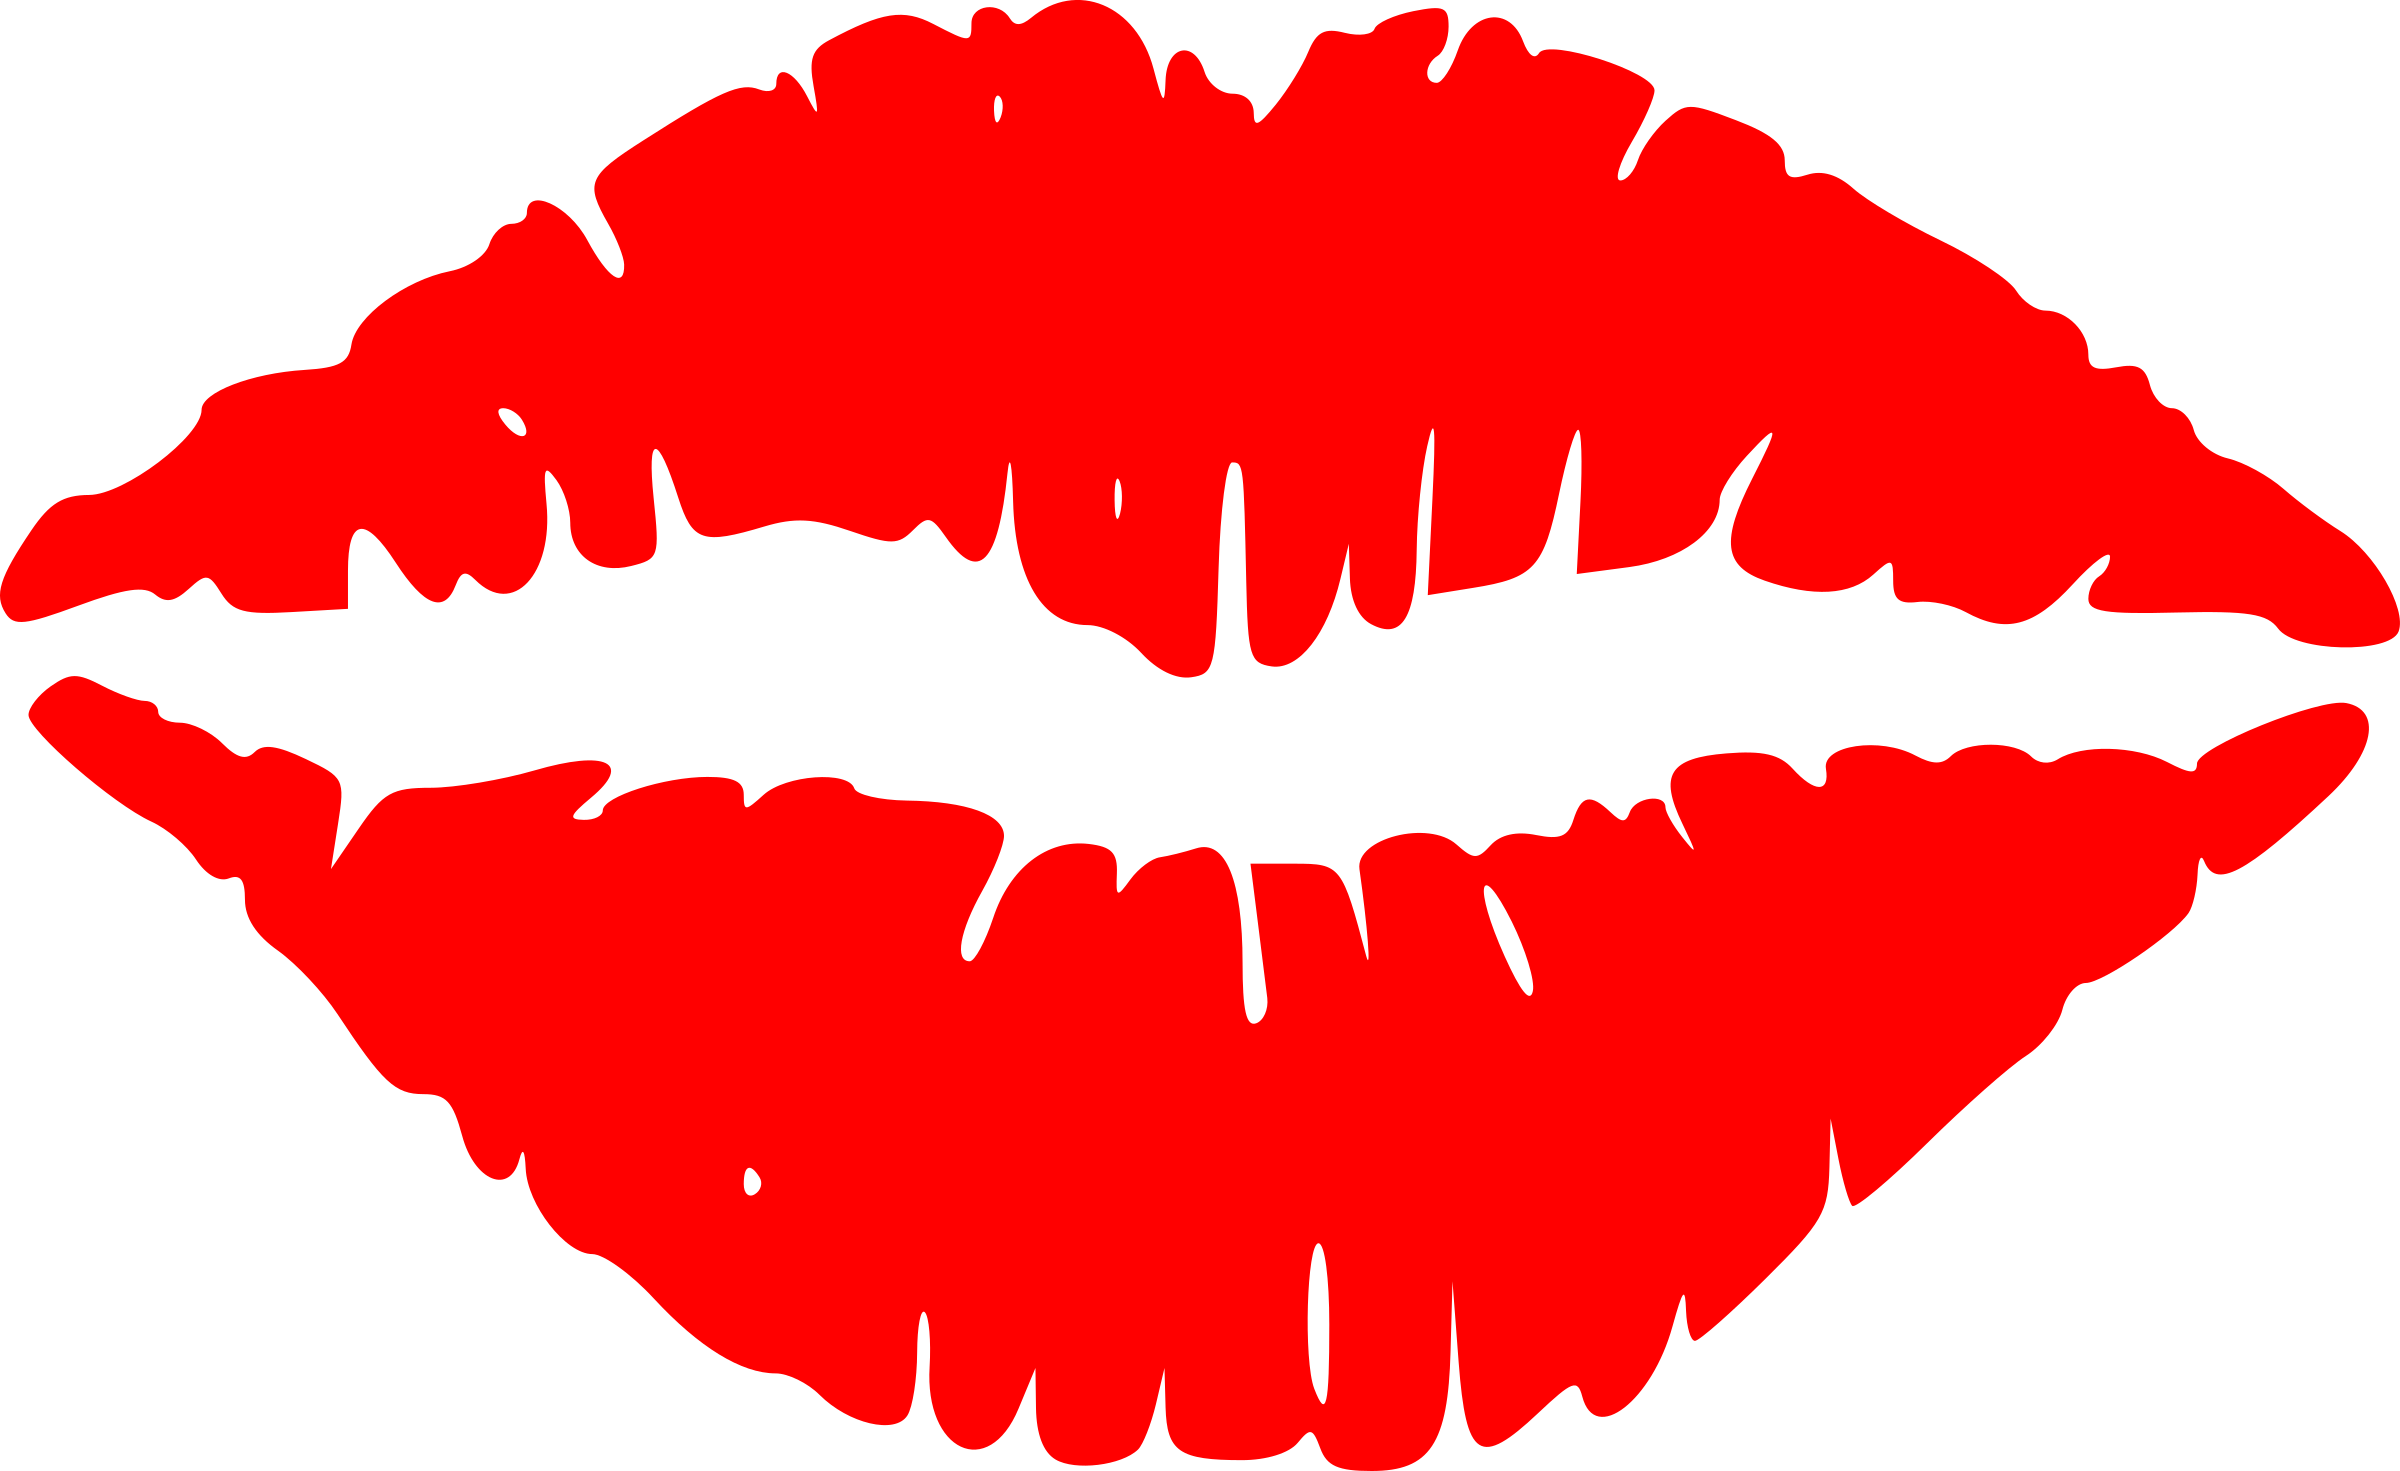 Icons png free and. Lips clipart simple lip